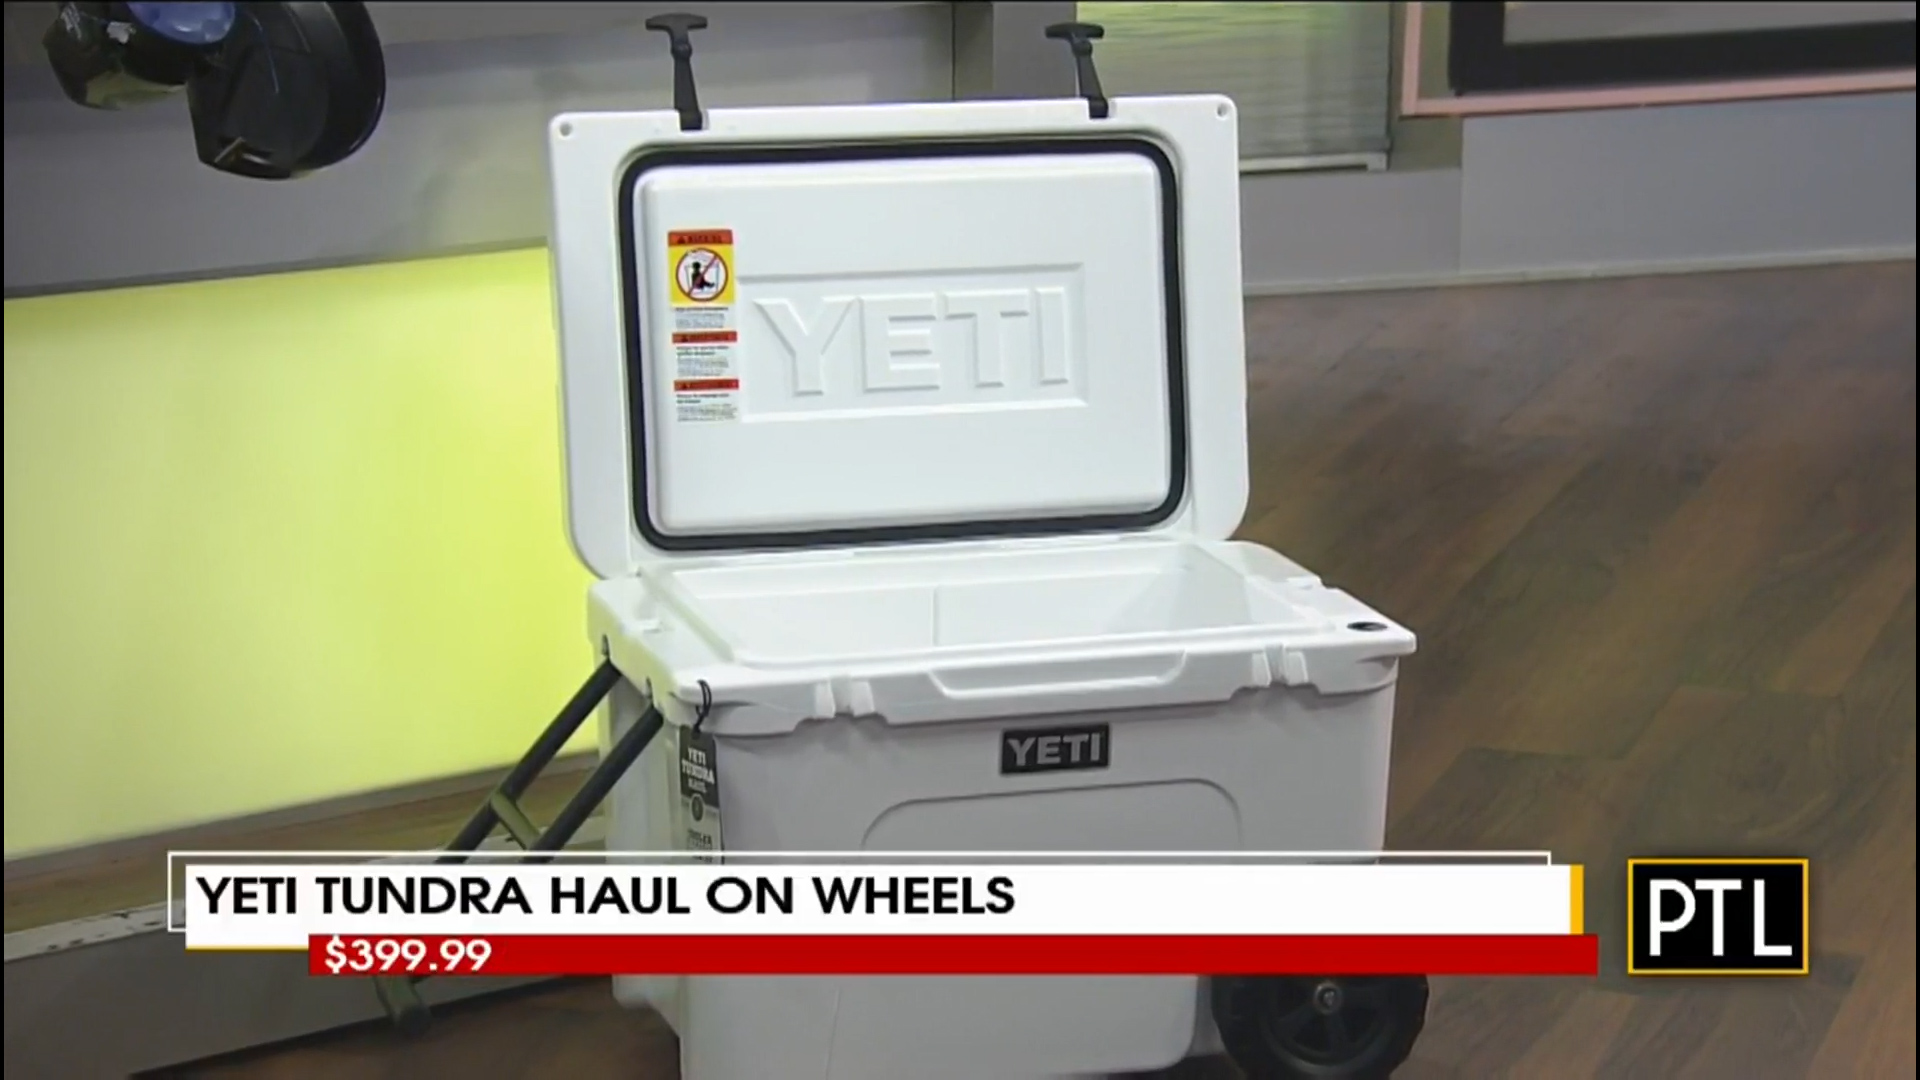 YETI TUNDRA HAUL on WHEELS - $399.99Shop Now